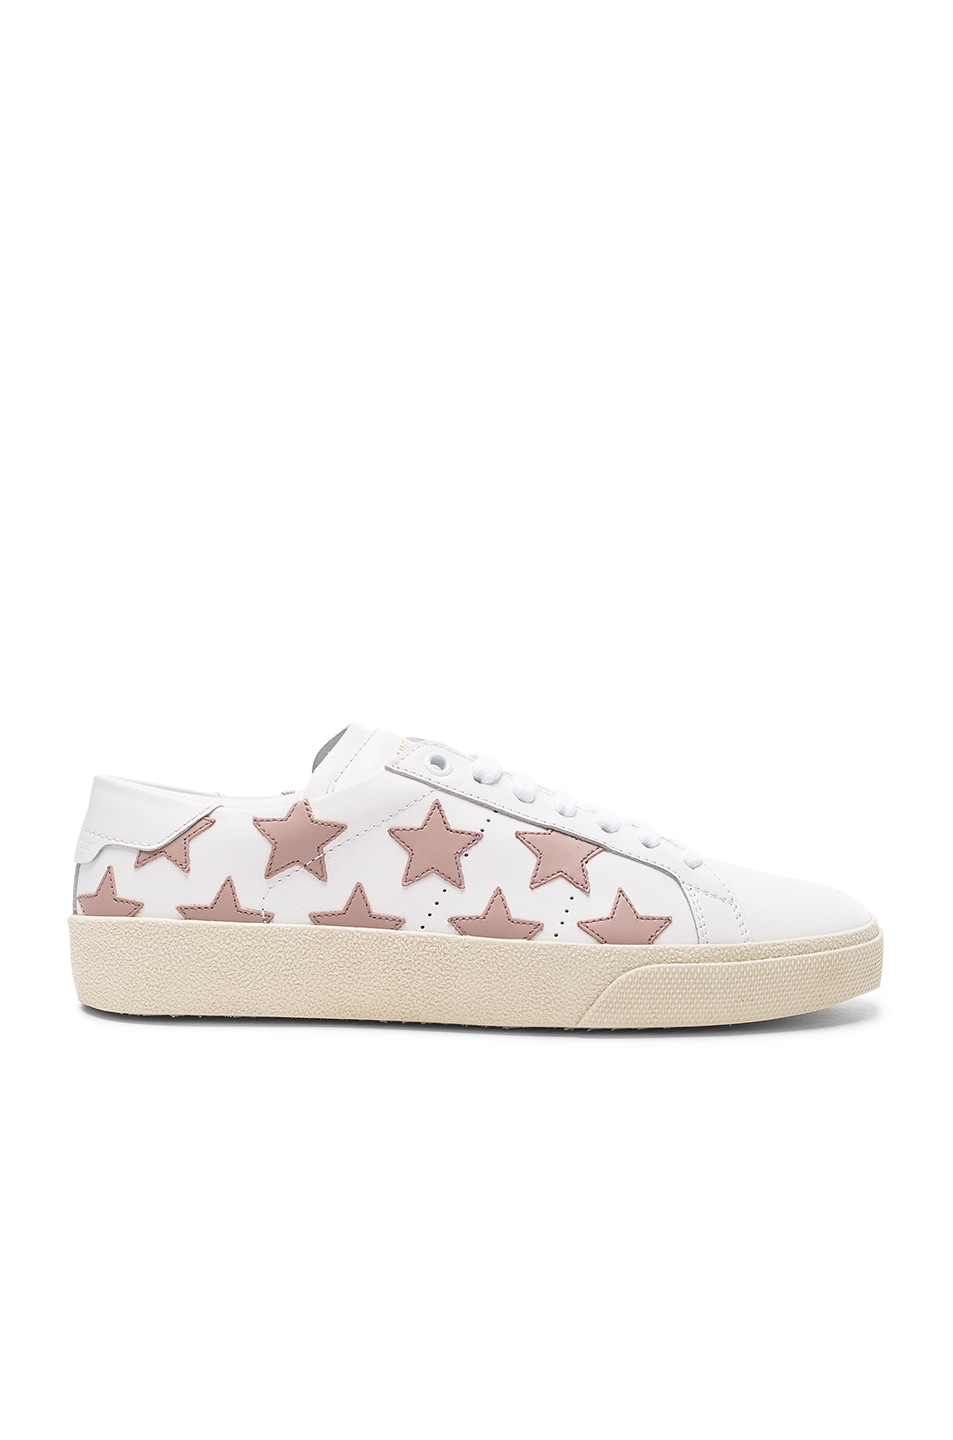 Image 1 of Saint Laurent Leather Court Classic Star Sneakers in Off White & Rose Antic